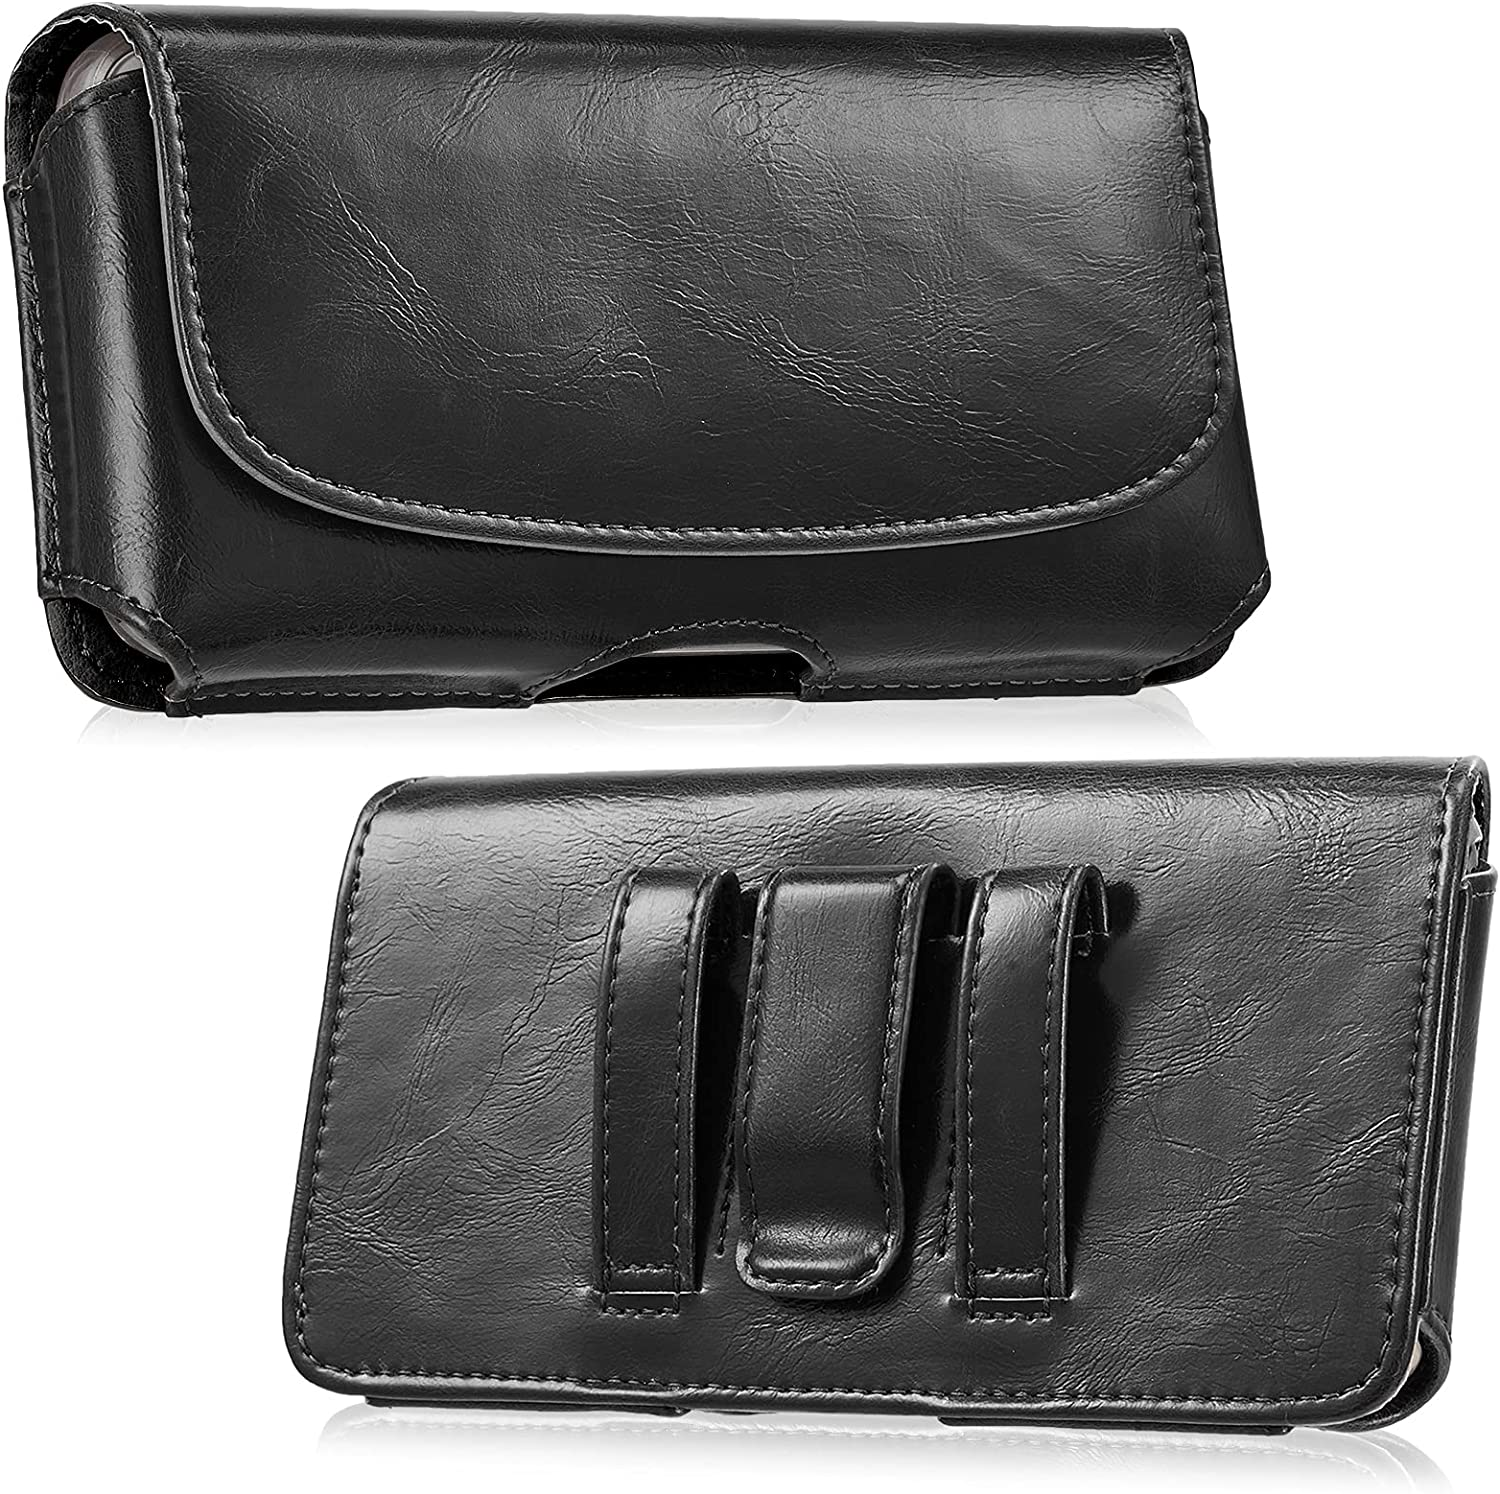 Universal Premium Horizontal Leather Case Pouch Holster w/Magnetic Closure w/Belt Clip Holster and Belt Loops for iPhone 12/11 Pro Max, iPhone Xs Max/ XR / 11 / 12 fit 6.7 inch Mobile Phone(Black)